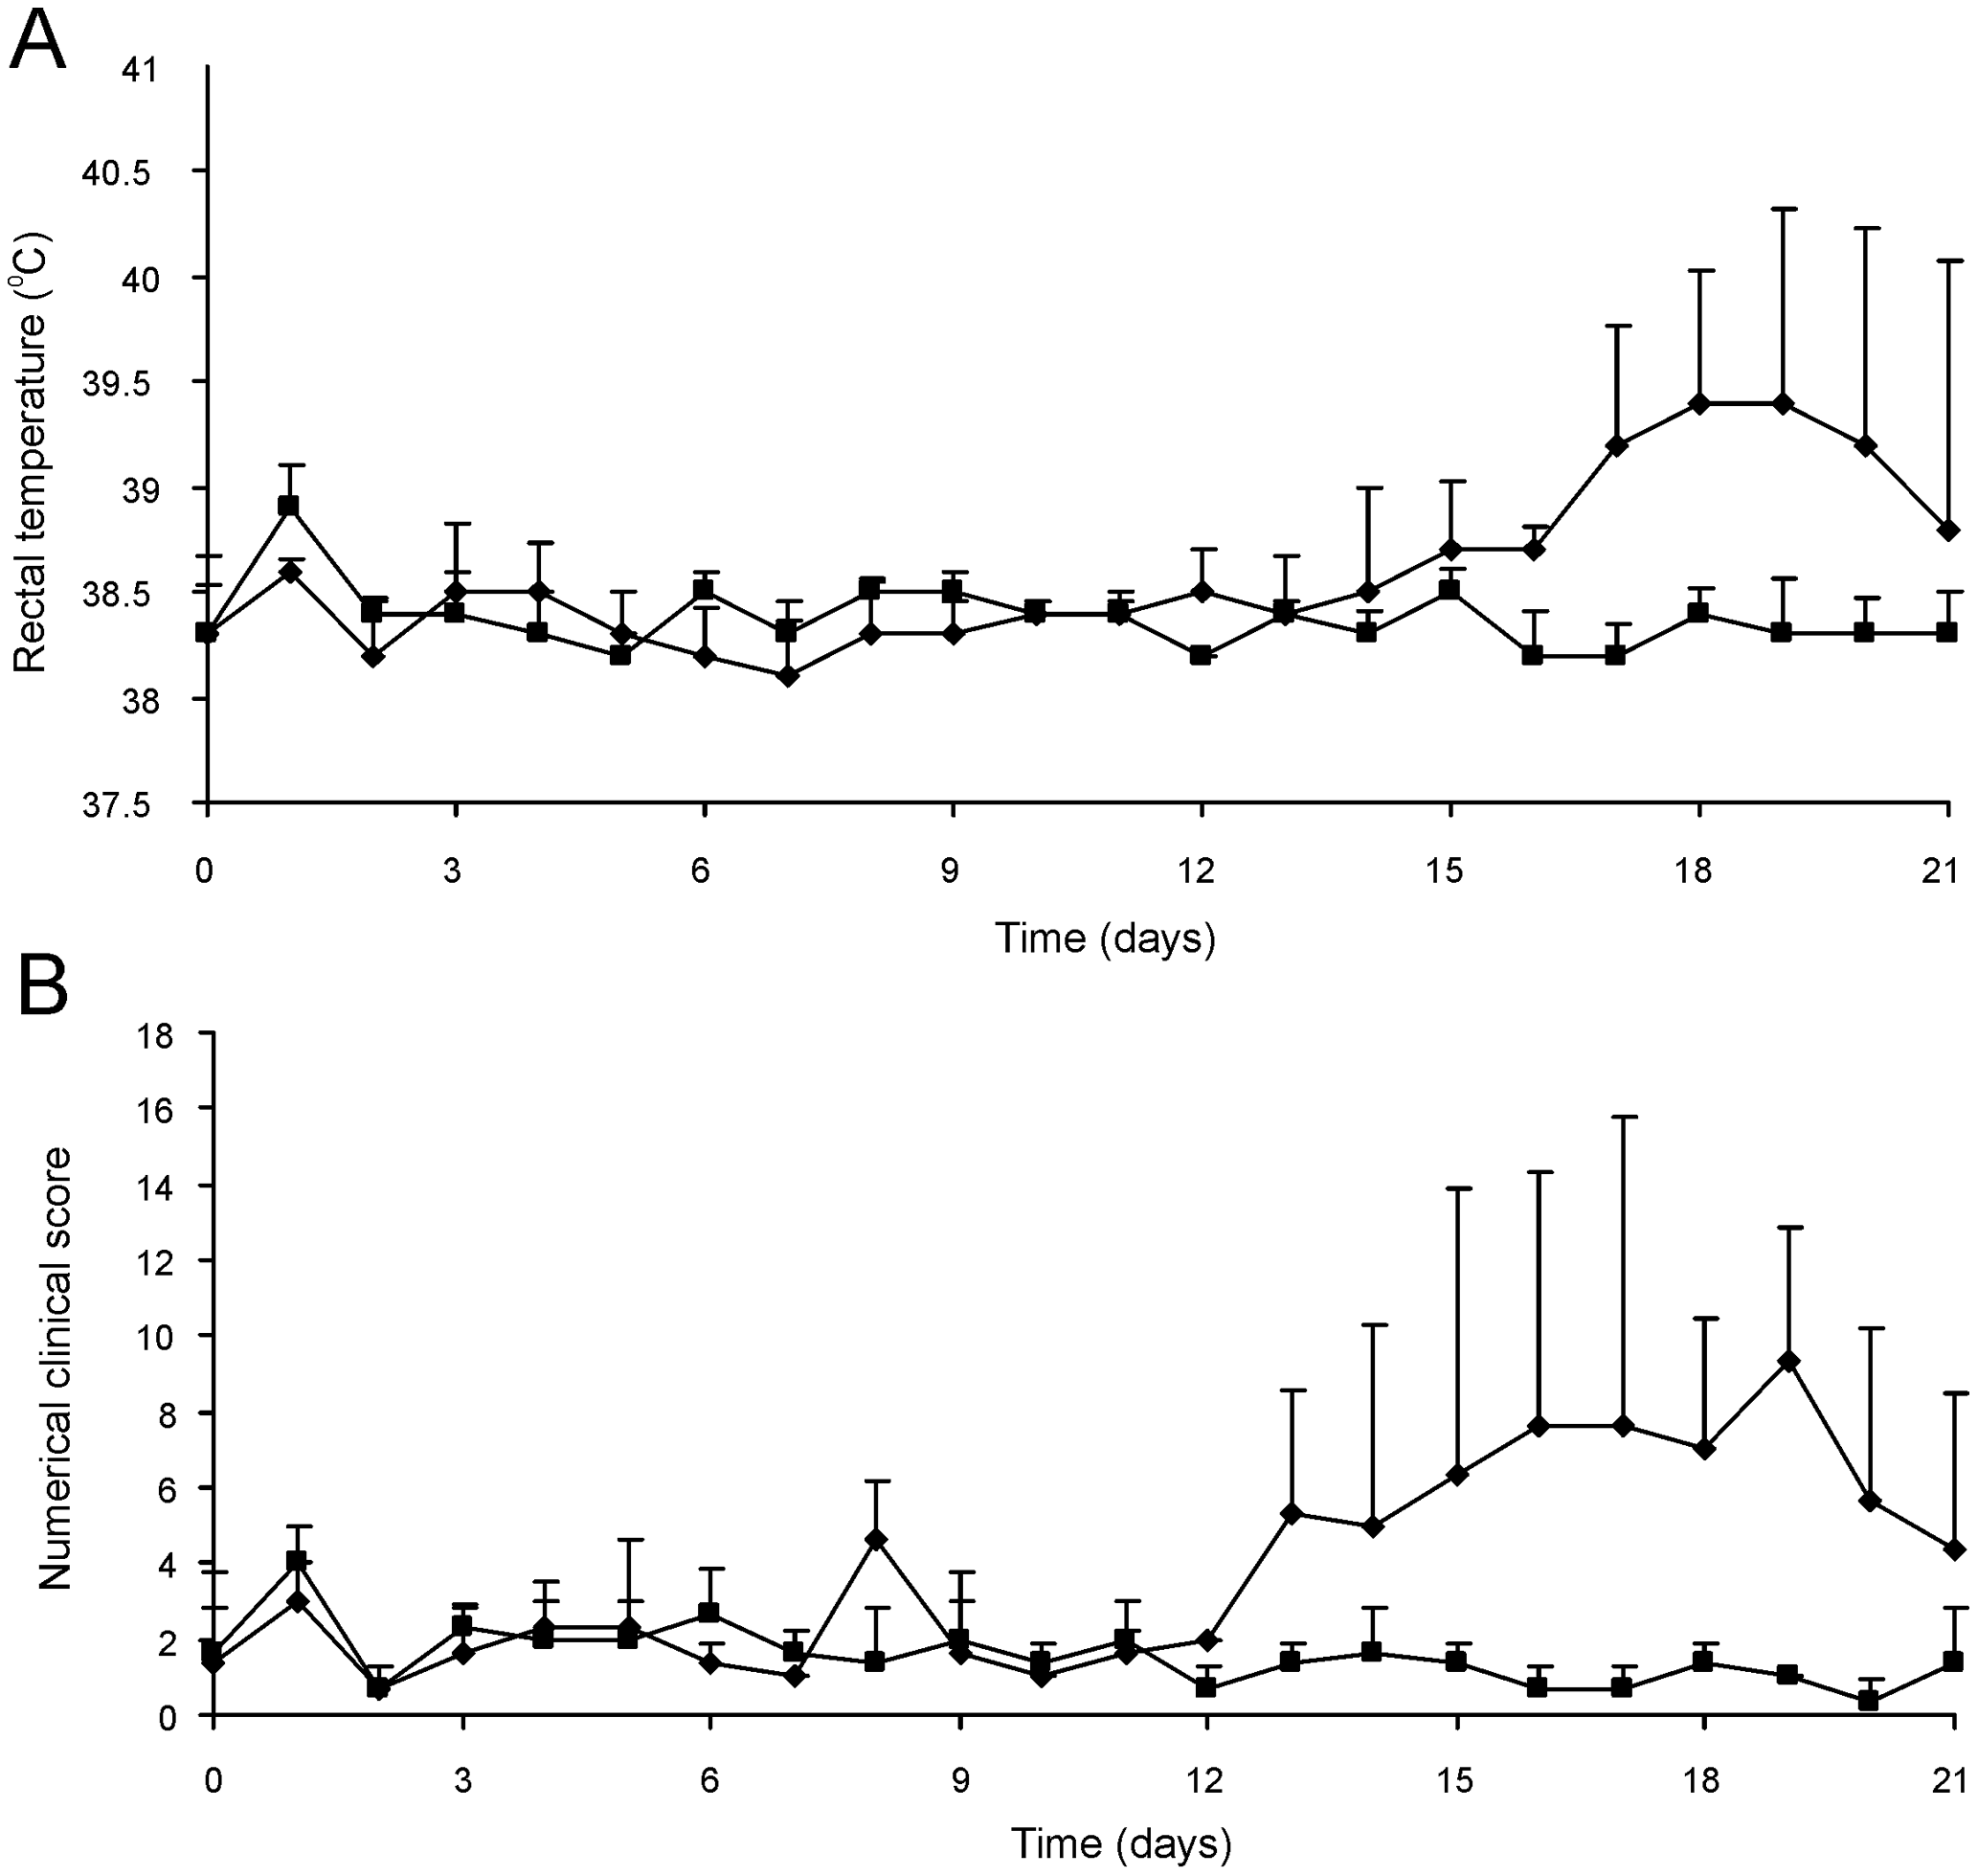 Intratracheal challenge of 3 to 5-week-old foals. Foals (mean of n = 3) were challenged intratracheally with mutant <i>R. equi</i> RE1Δ<i>ipdAB</i> (7.1×10<sup>6</sup> CFU; squares) or wild type RE1 (4.3×10<sup>6</sup> CFU; diamonds).